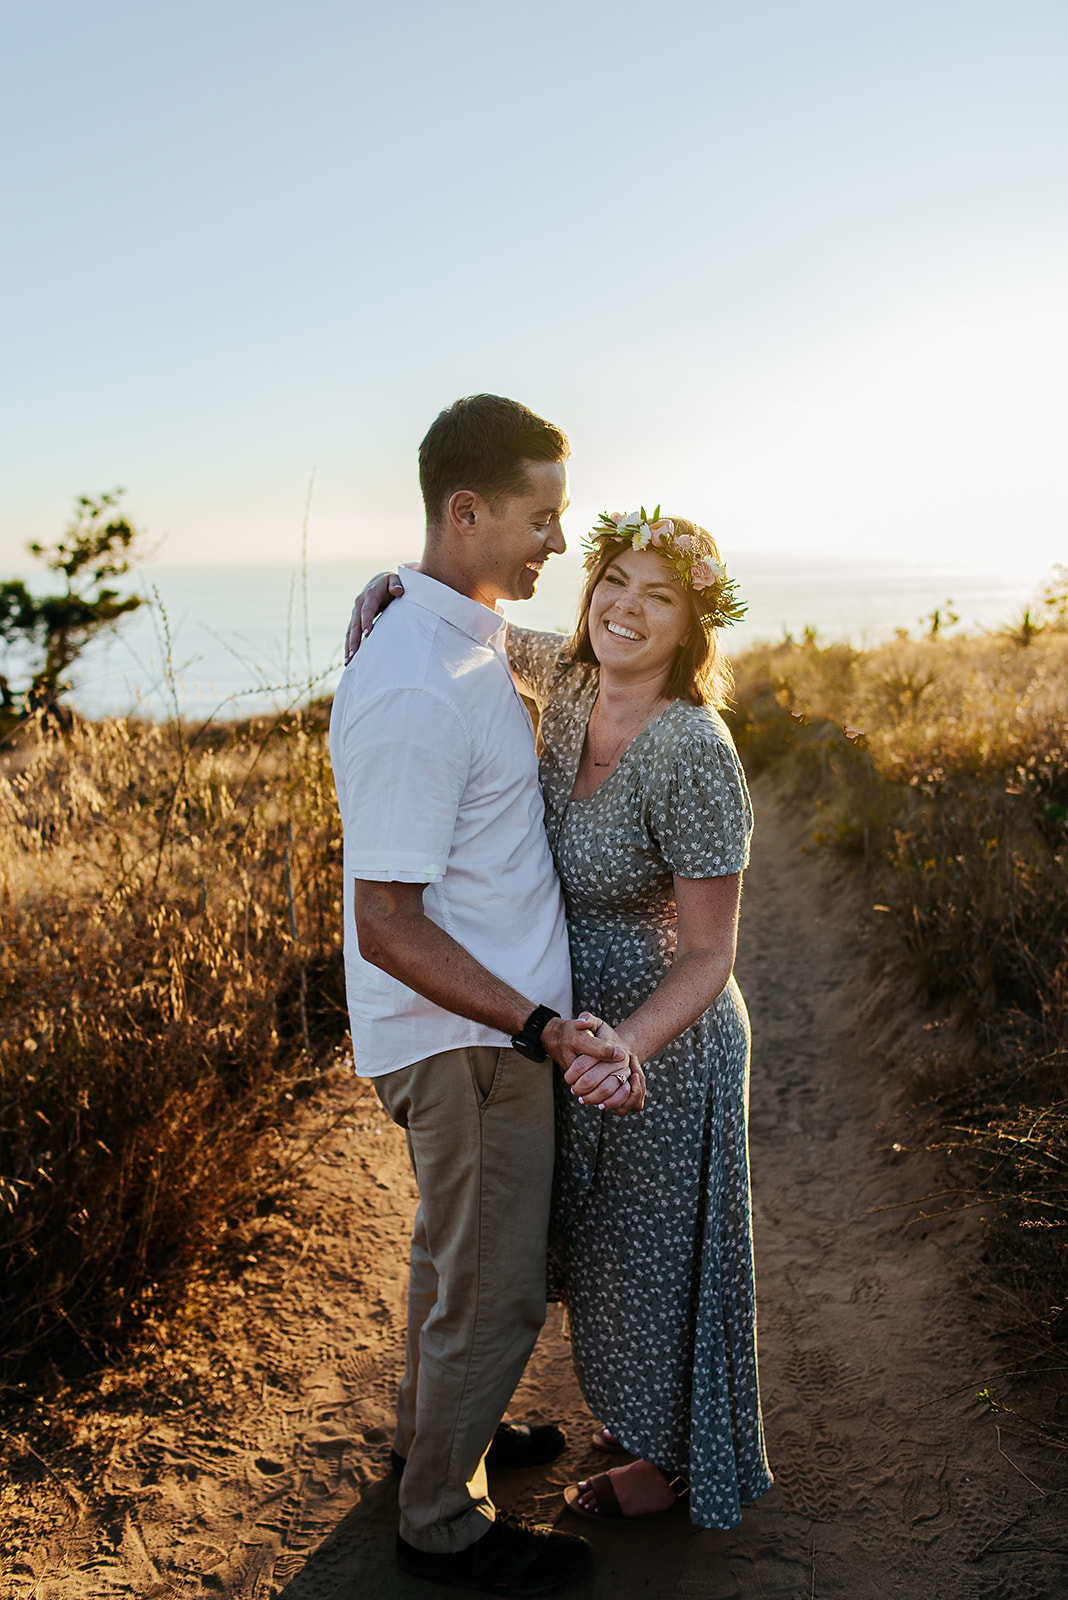 SoCal_Standard_-_San_Diego_Engagement_Photographer_-_Modern_Candid_Destination_Photographer_-_Engagement_Session_at_Torrey_Pines_San_Diego_California_-_Grace_and_Robert-181.jpg